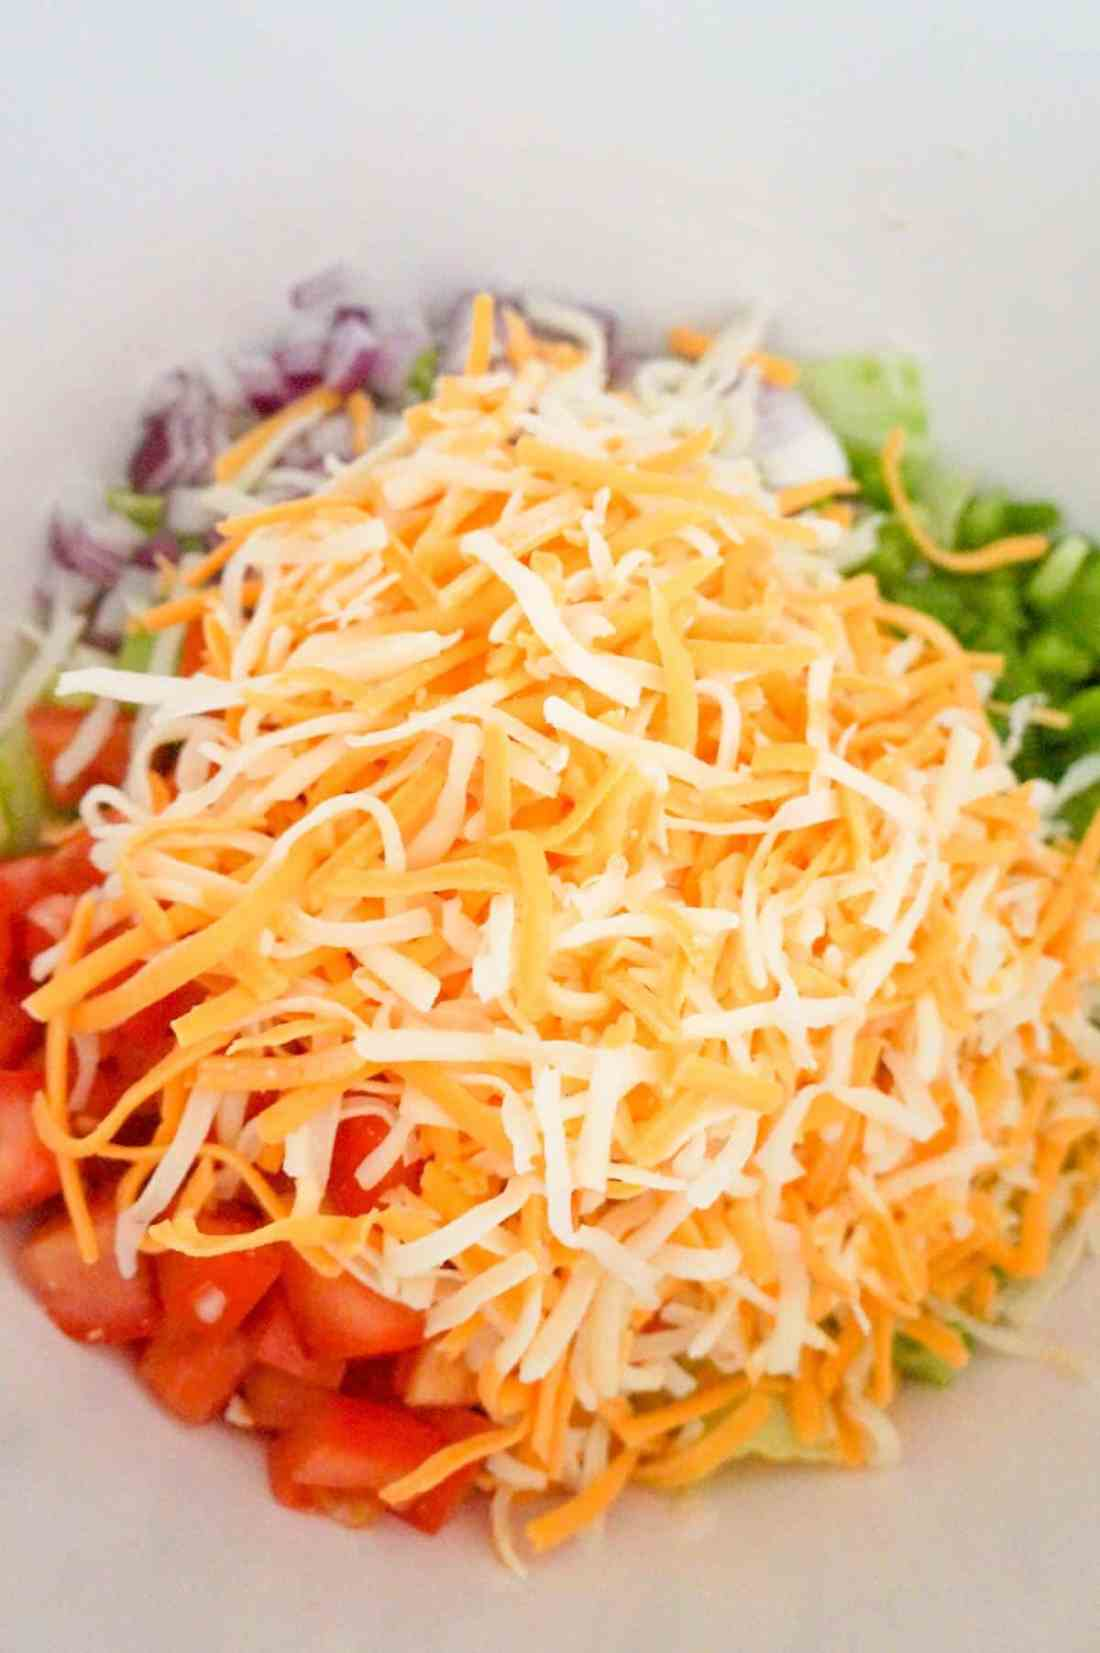 shredded cheese on top of salad in a mixing bowl